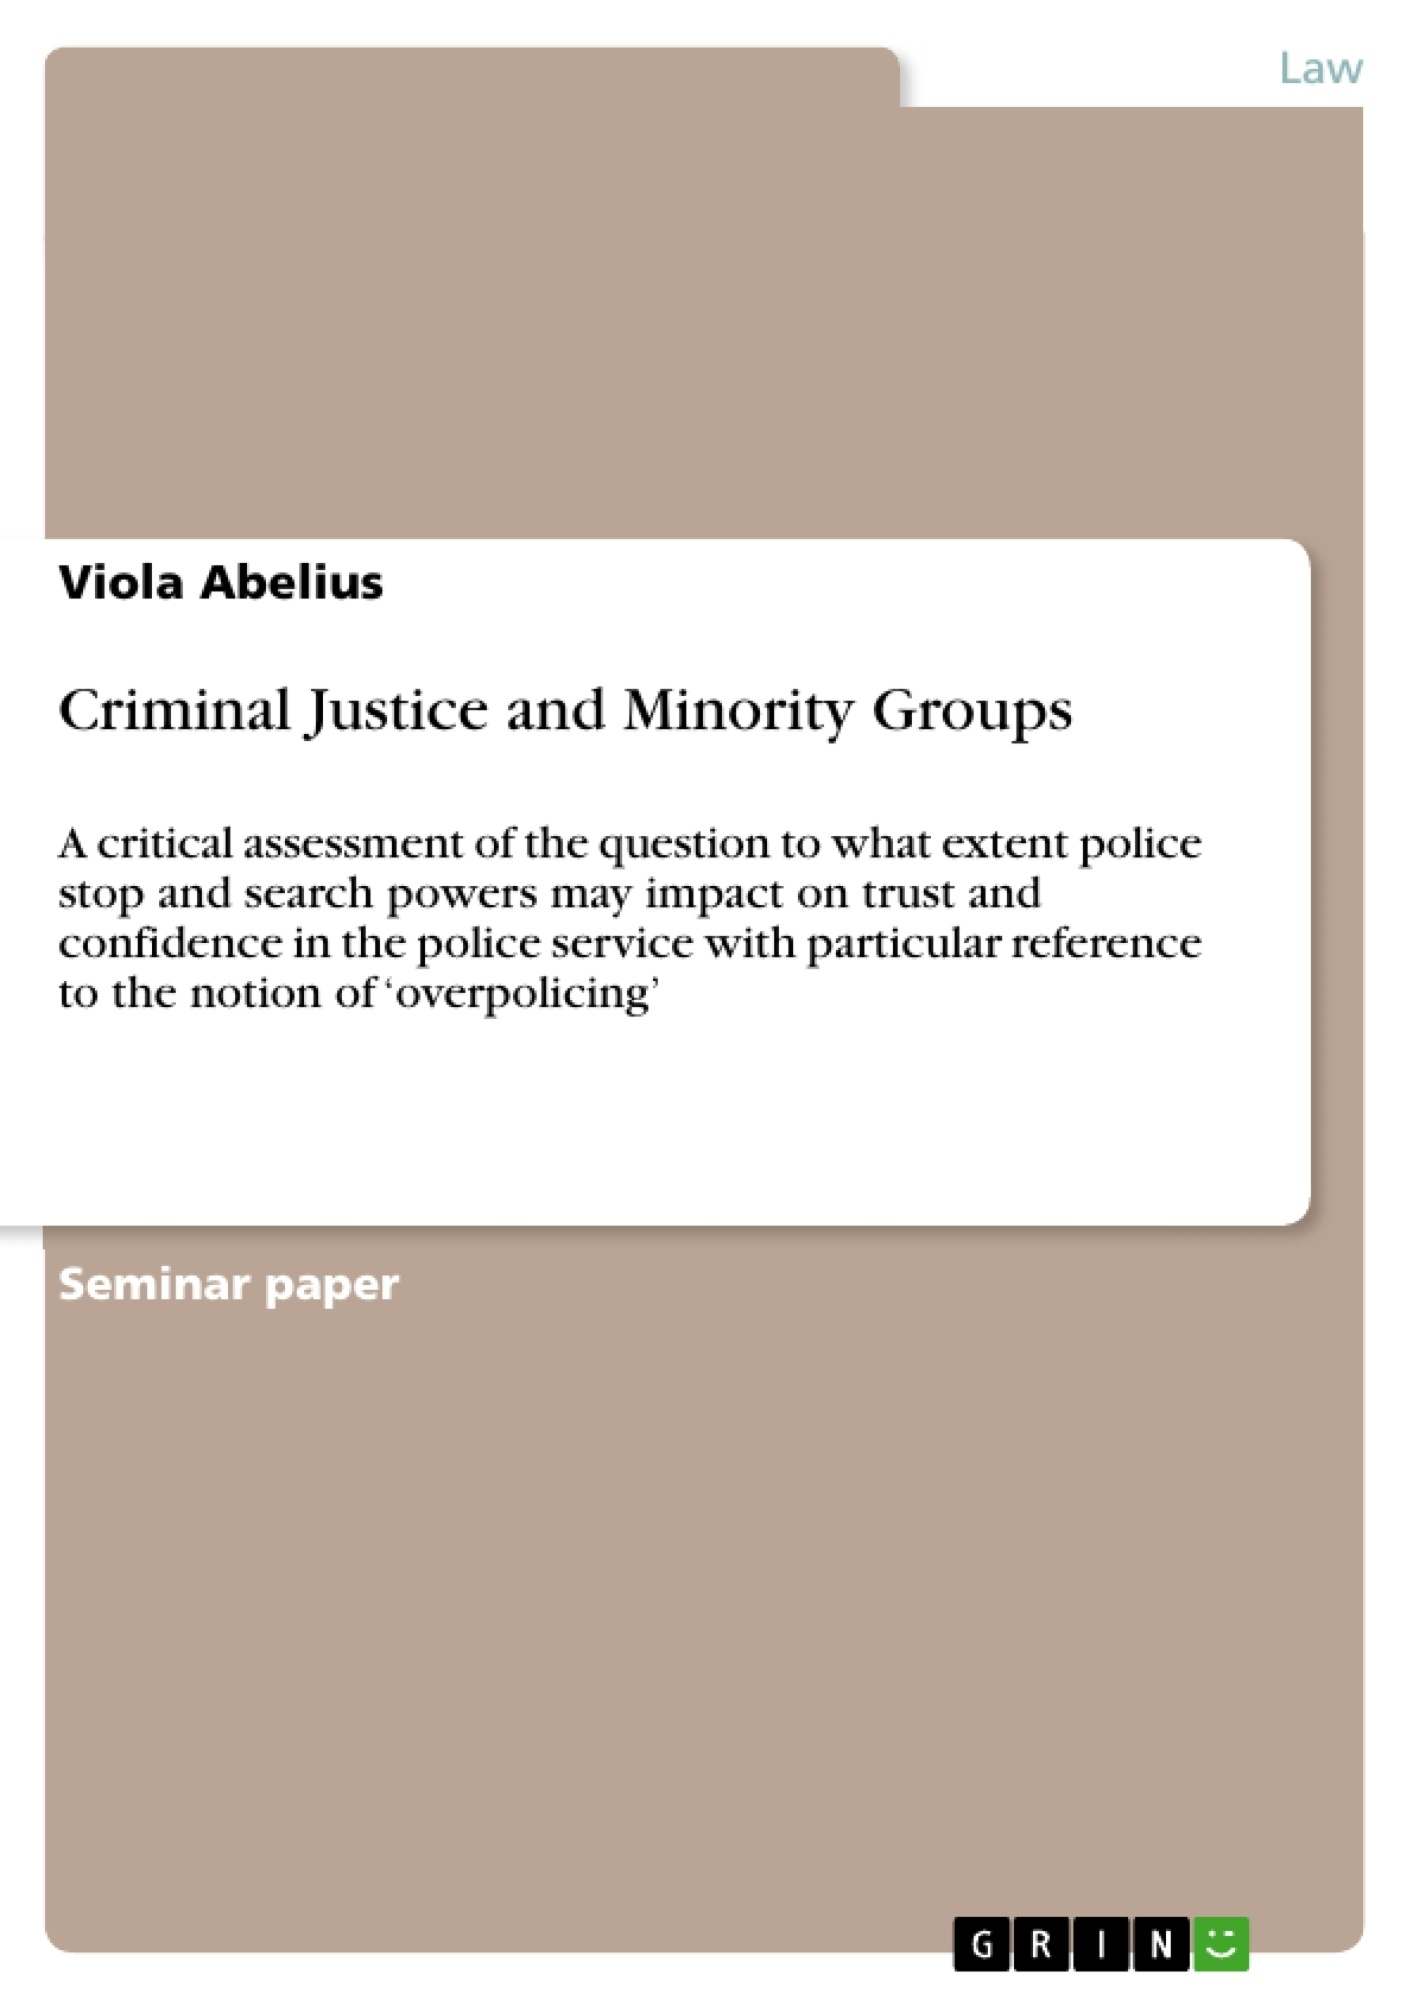 Title: Criminal Justice and Minority Groups